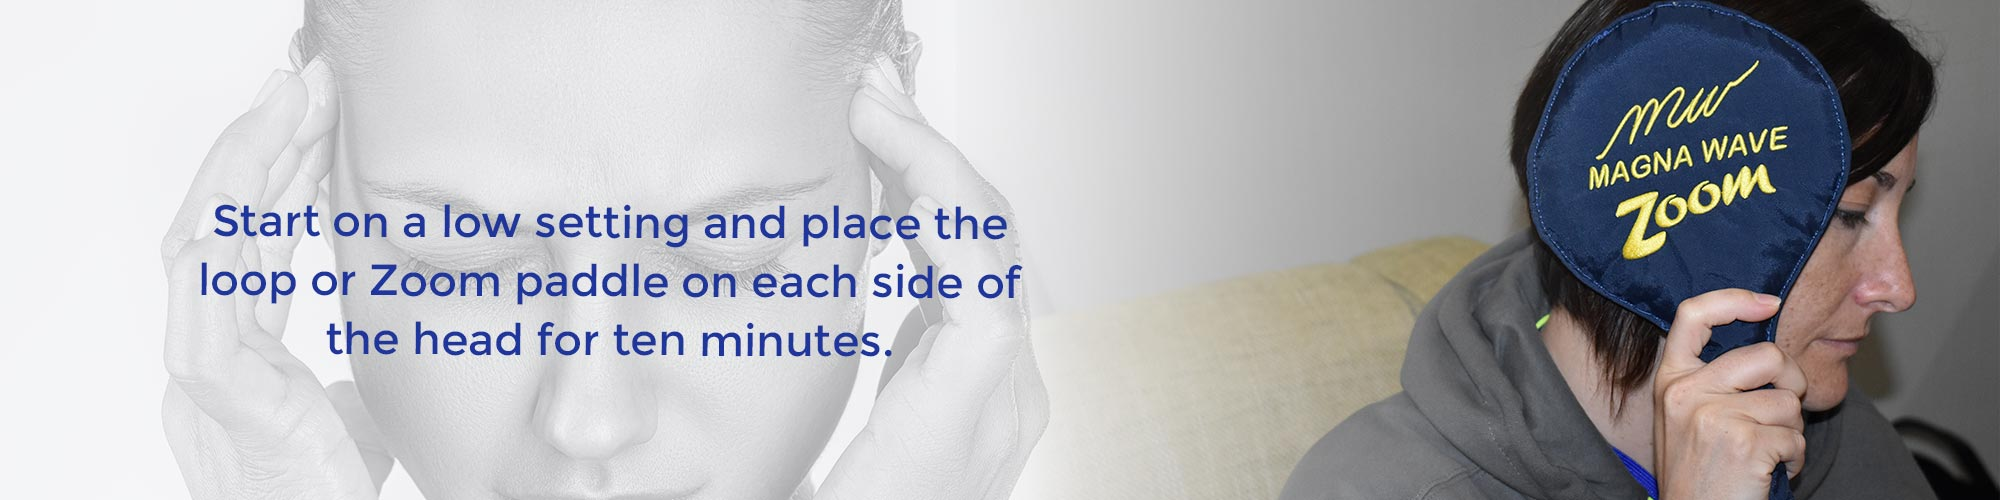 Start on a low setting and place the loop or Zoom paddle on each side of the head for ten minutes.